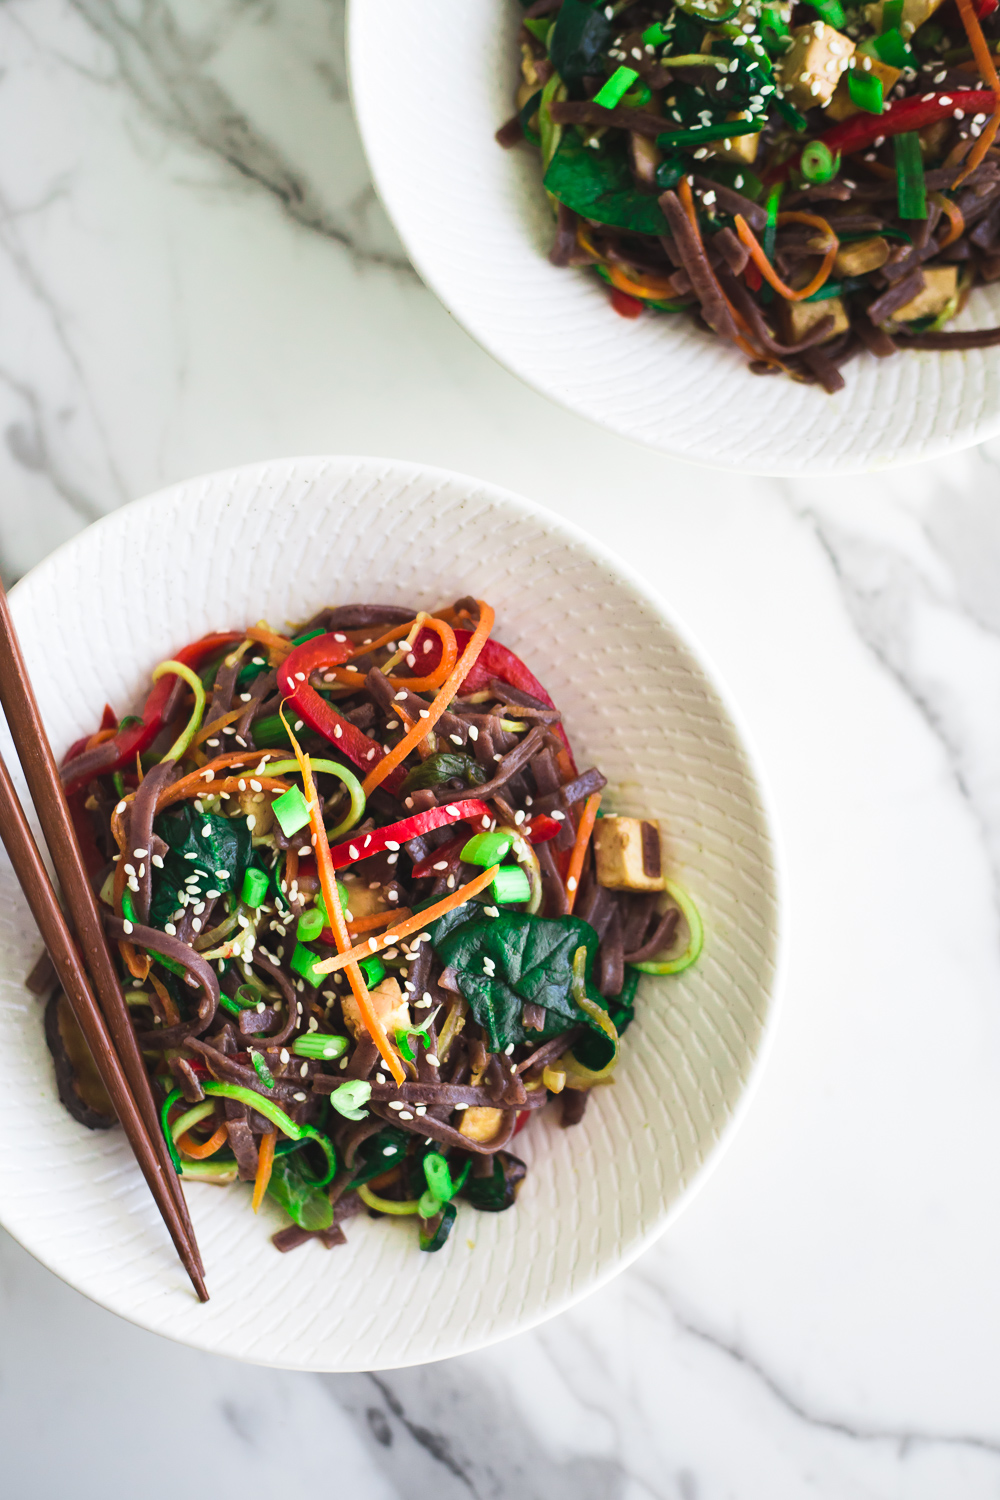 Healthy Vegan Korean Japchae Noodles - A Simple Dish loaded with Vegetables and Zucchini Noodles that is ready in under 30 minutes. #vegan #japchae #korean #noodles #recipe #asian #quick